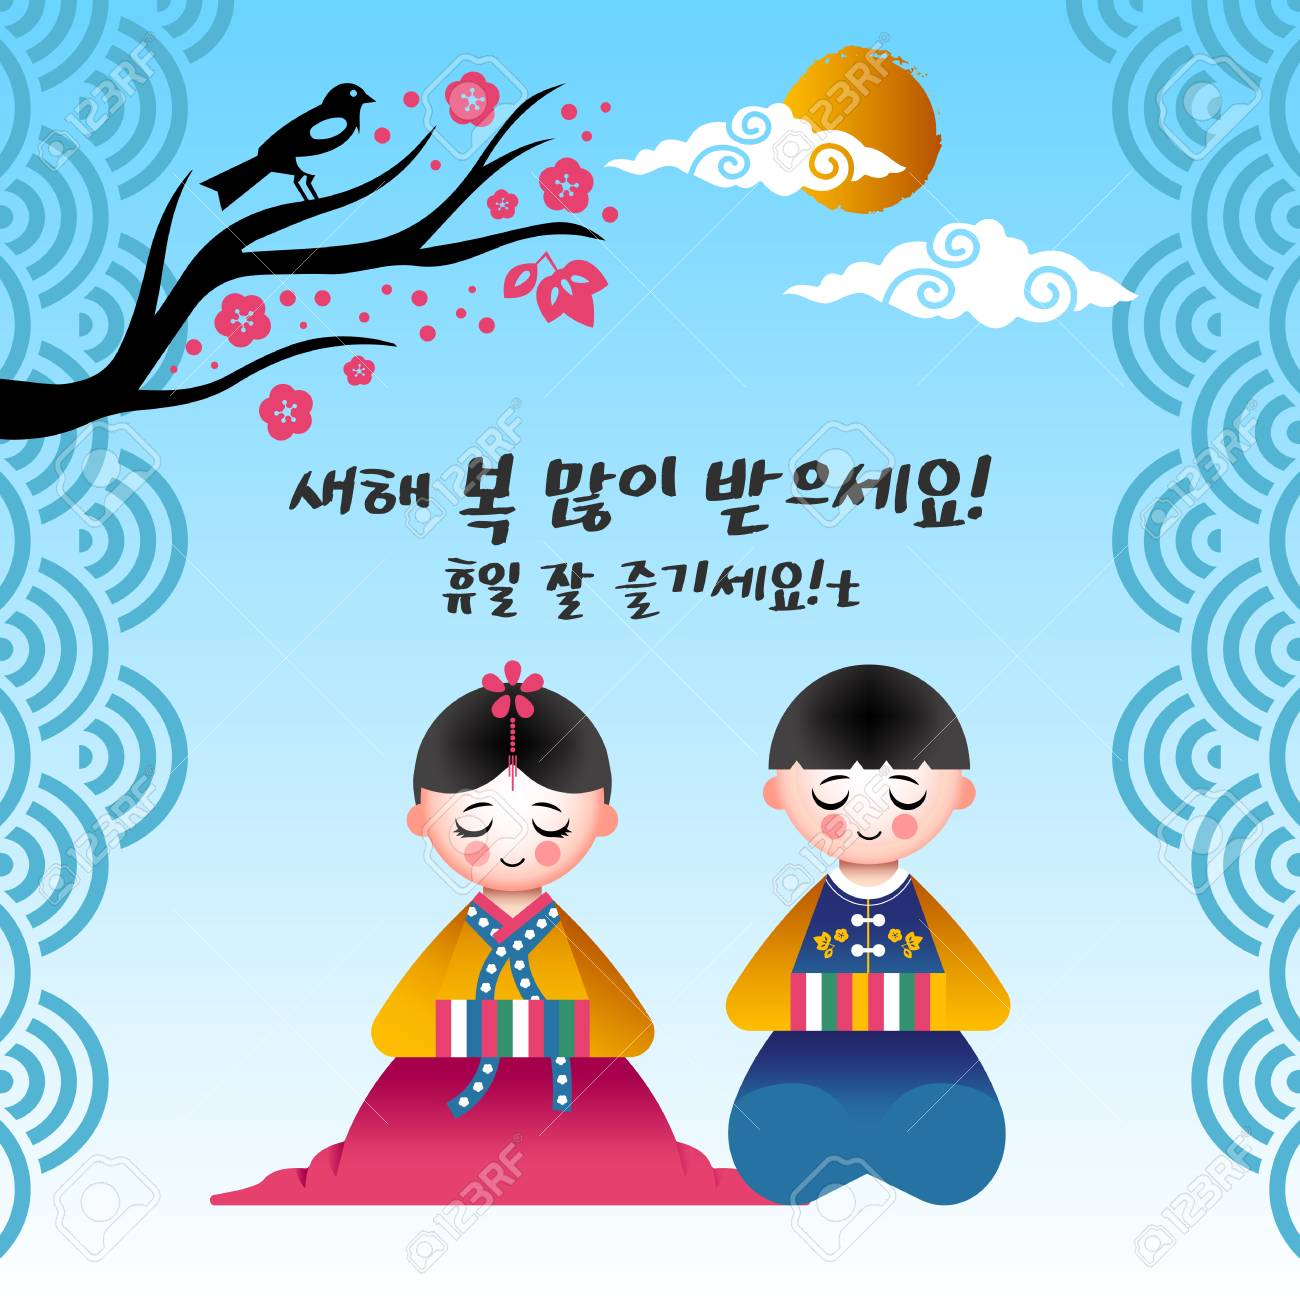 Korean New Year 2018 Greeting Card With Cute Kids In Traditional Clothes.  Stock Vector